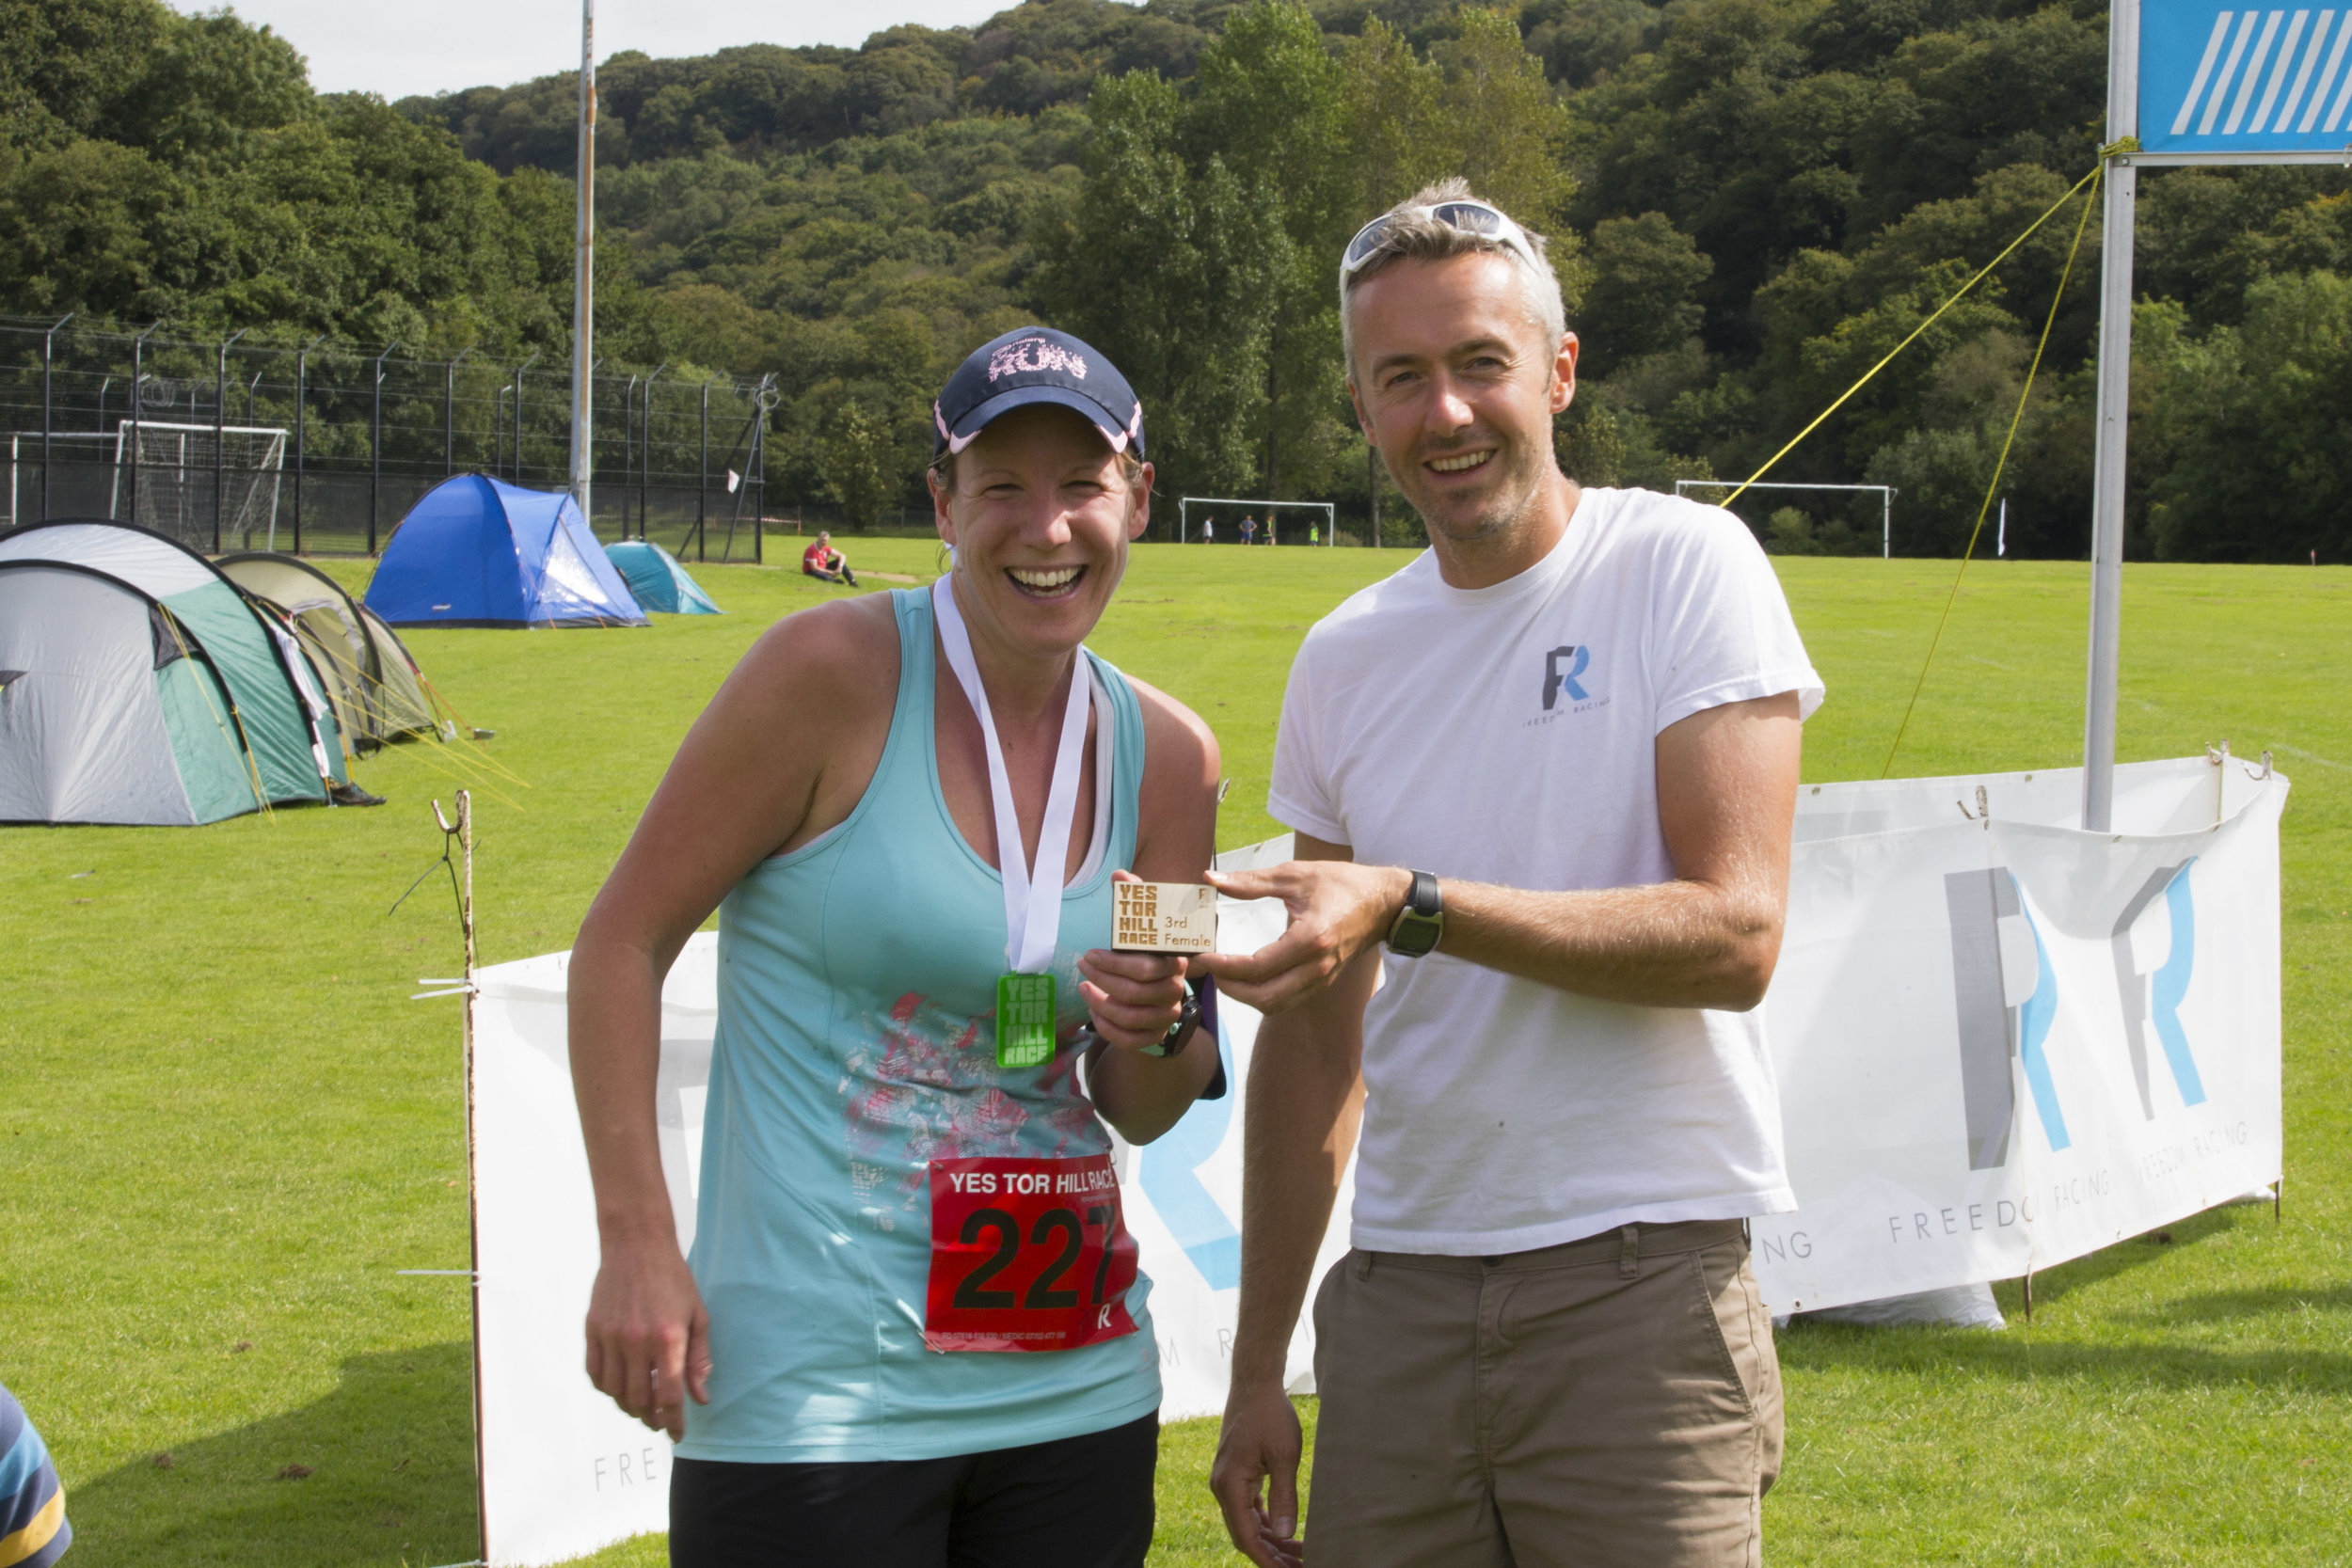 Yes Tor Hill race 3rd female